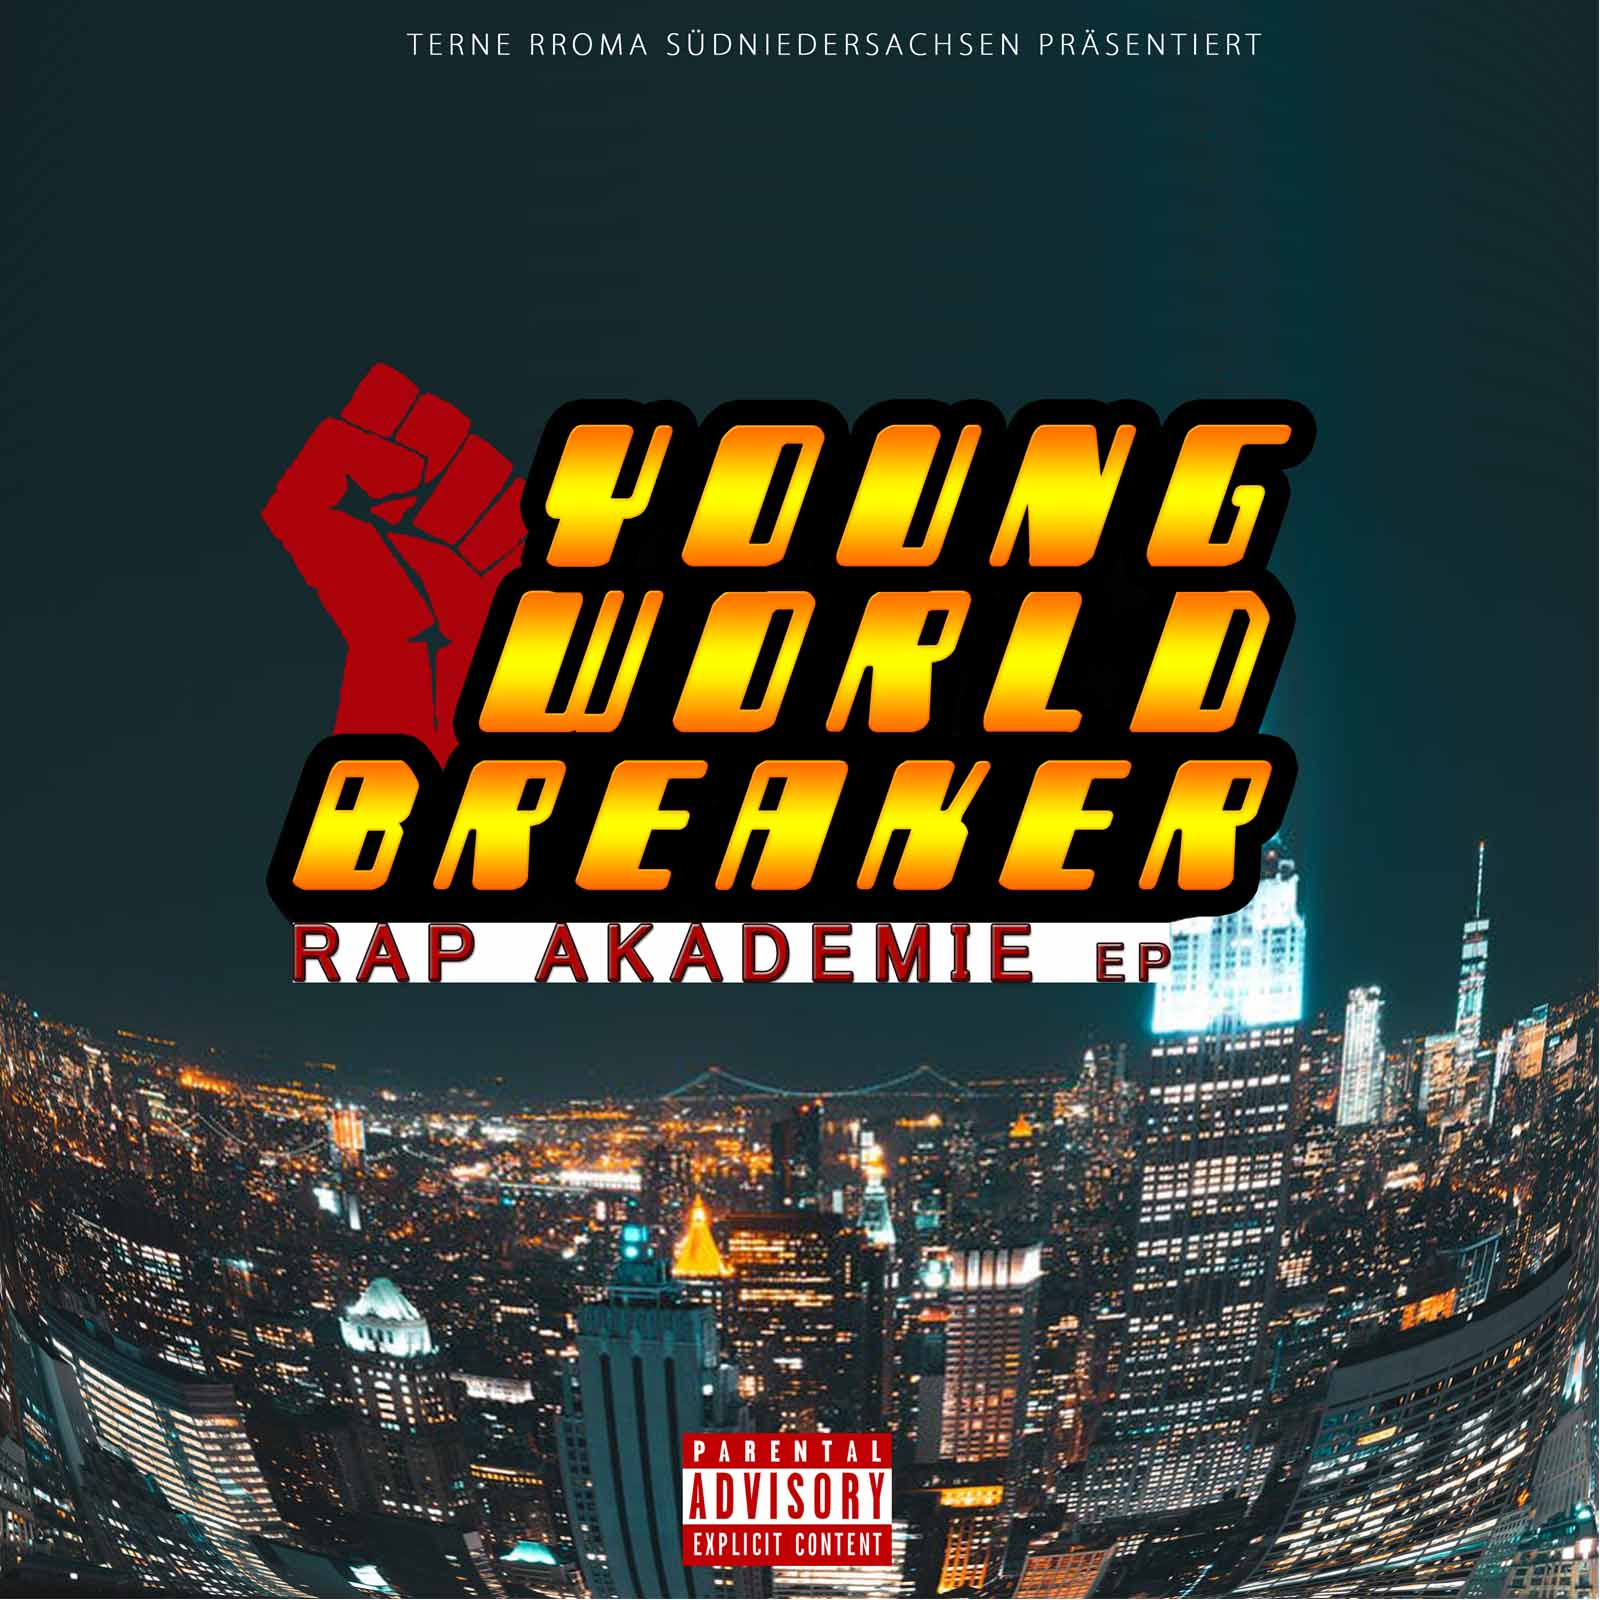 Upcoming: Y.W.B. - Rap Akademie EP